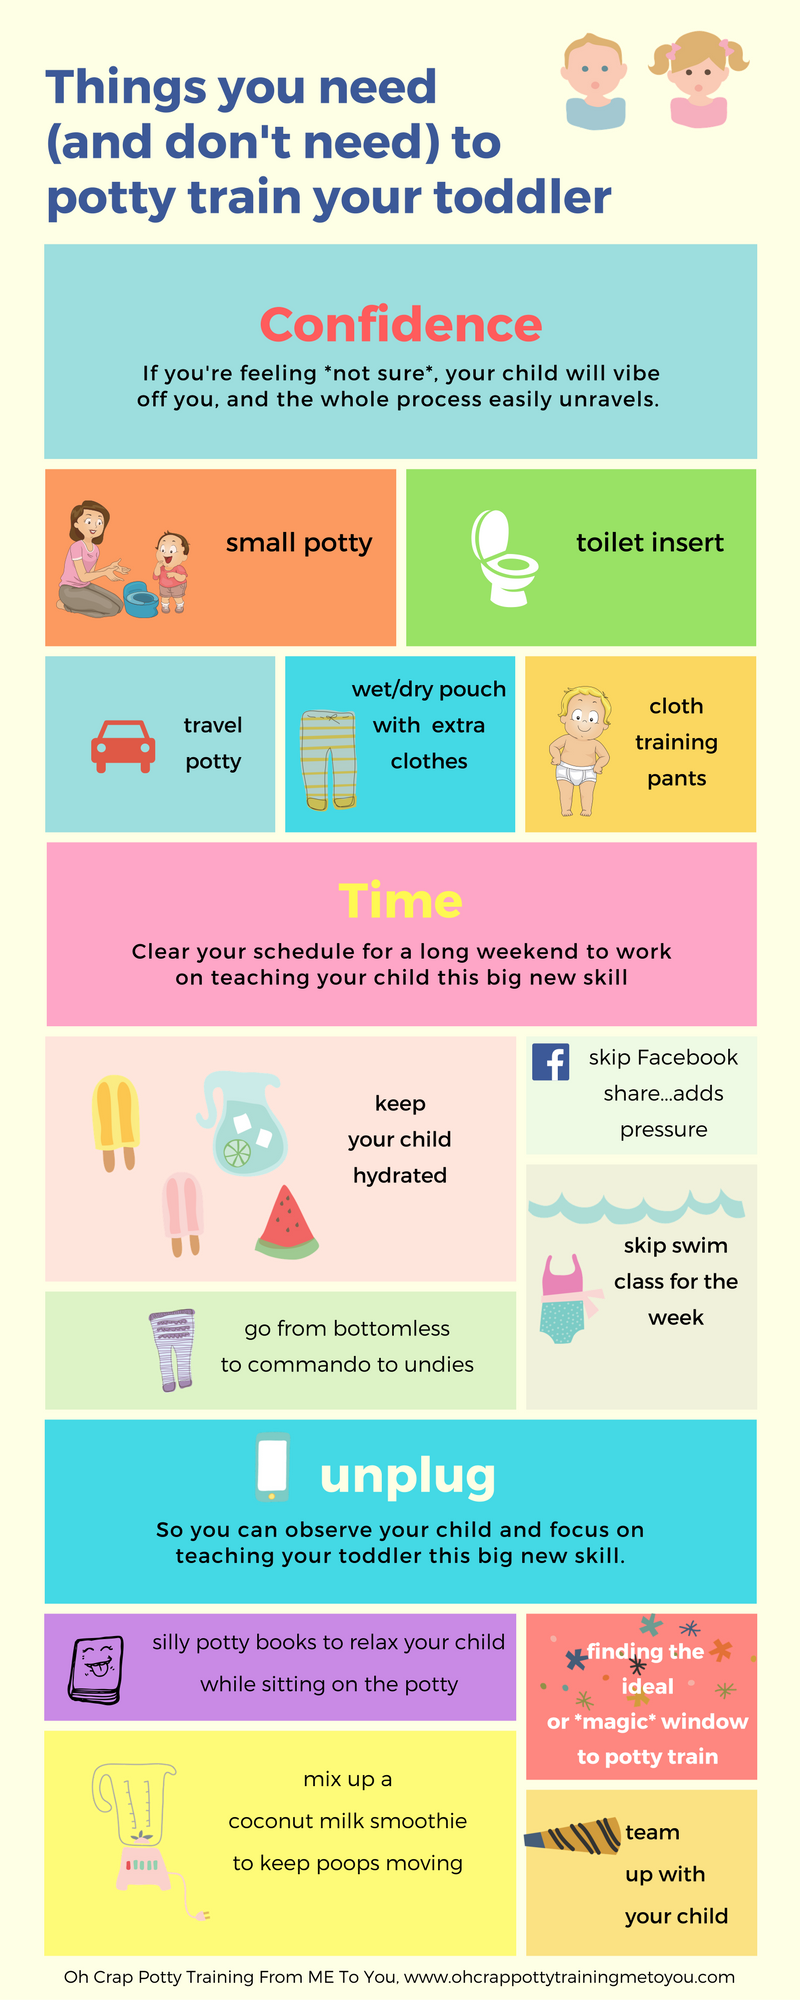 Things you need (and don't need) for potty training your child